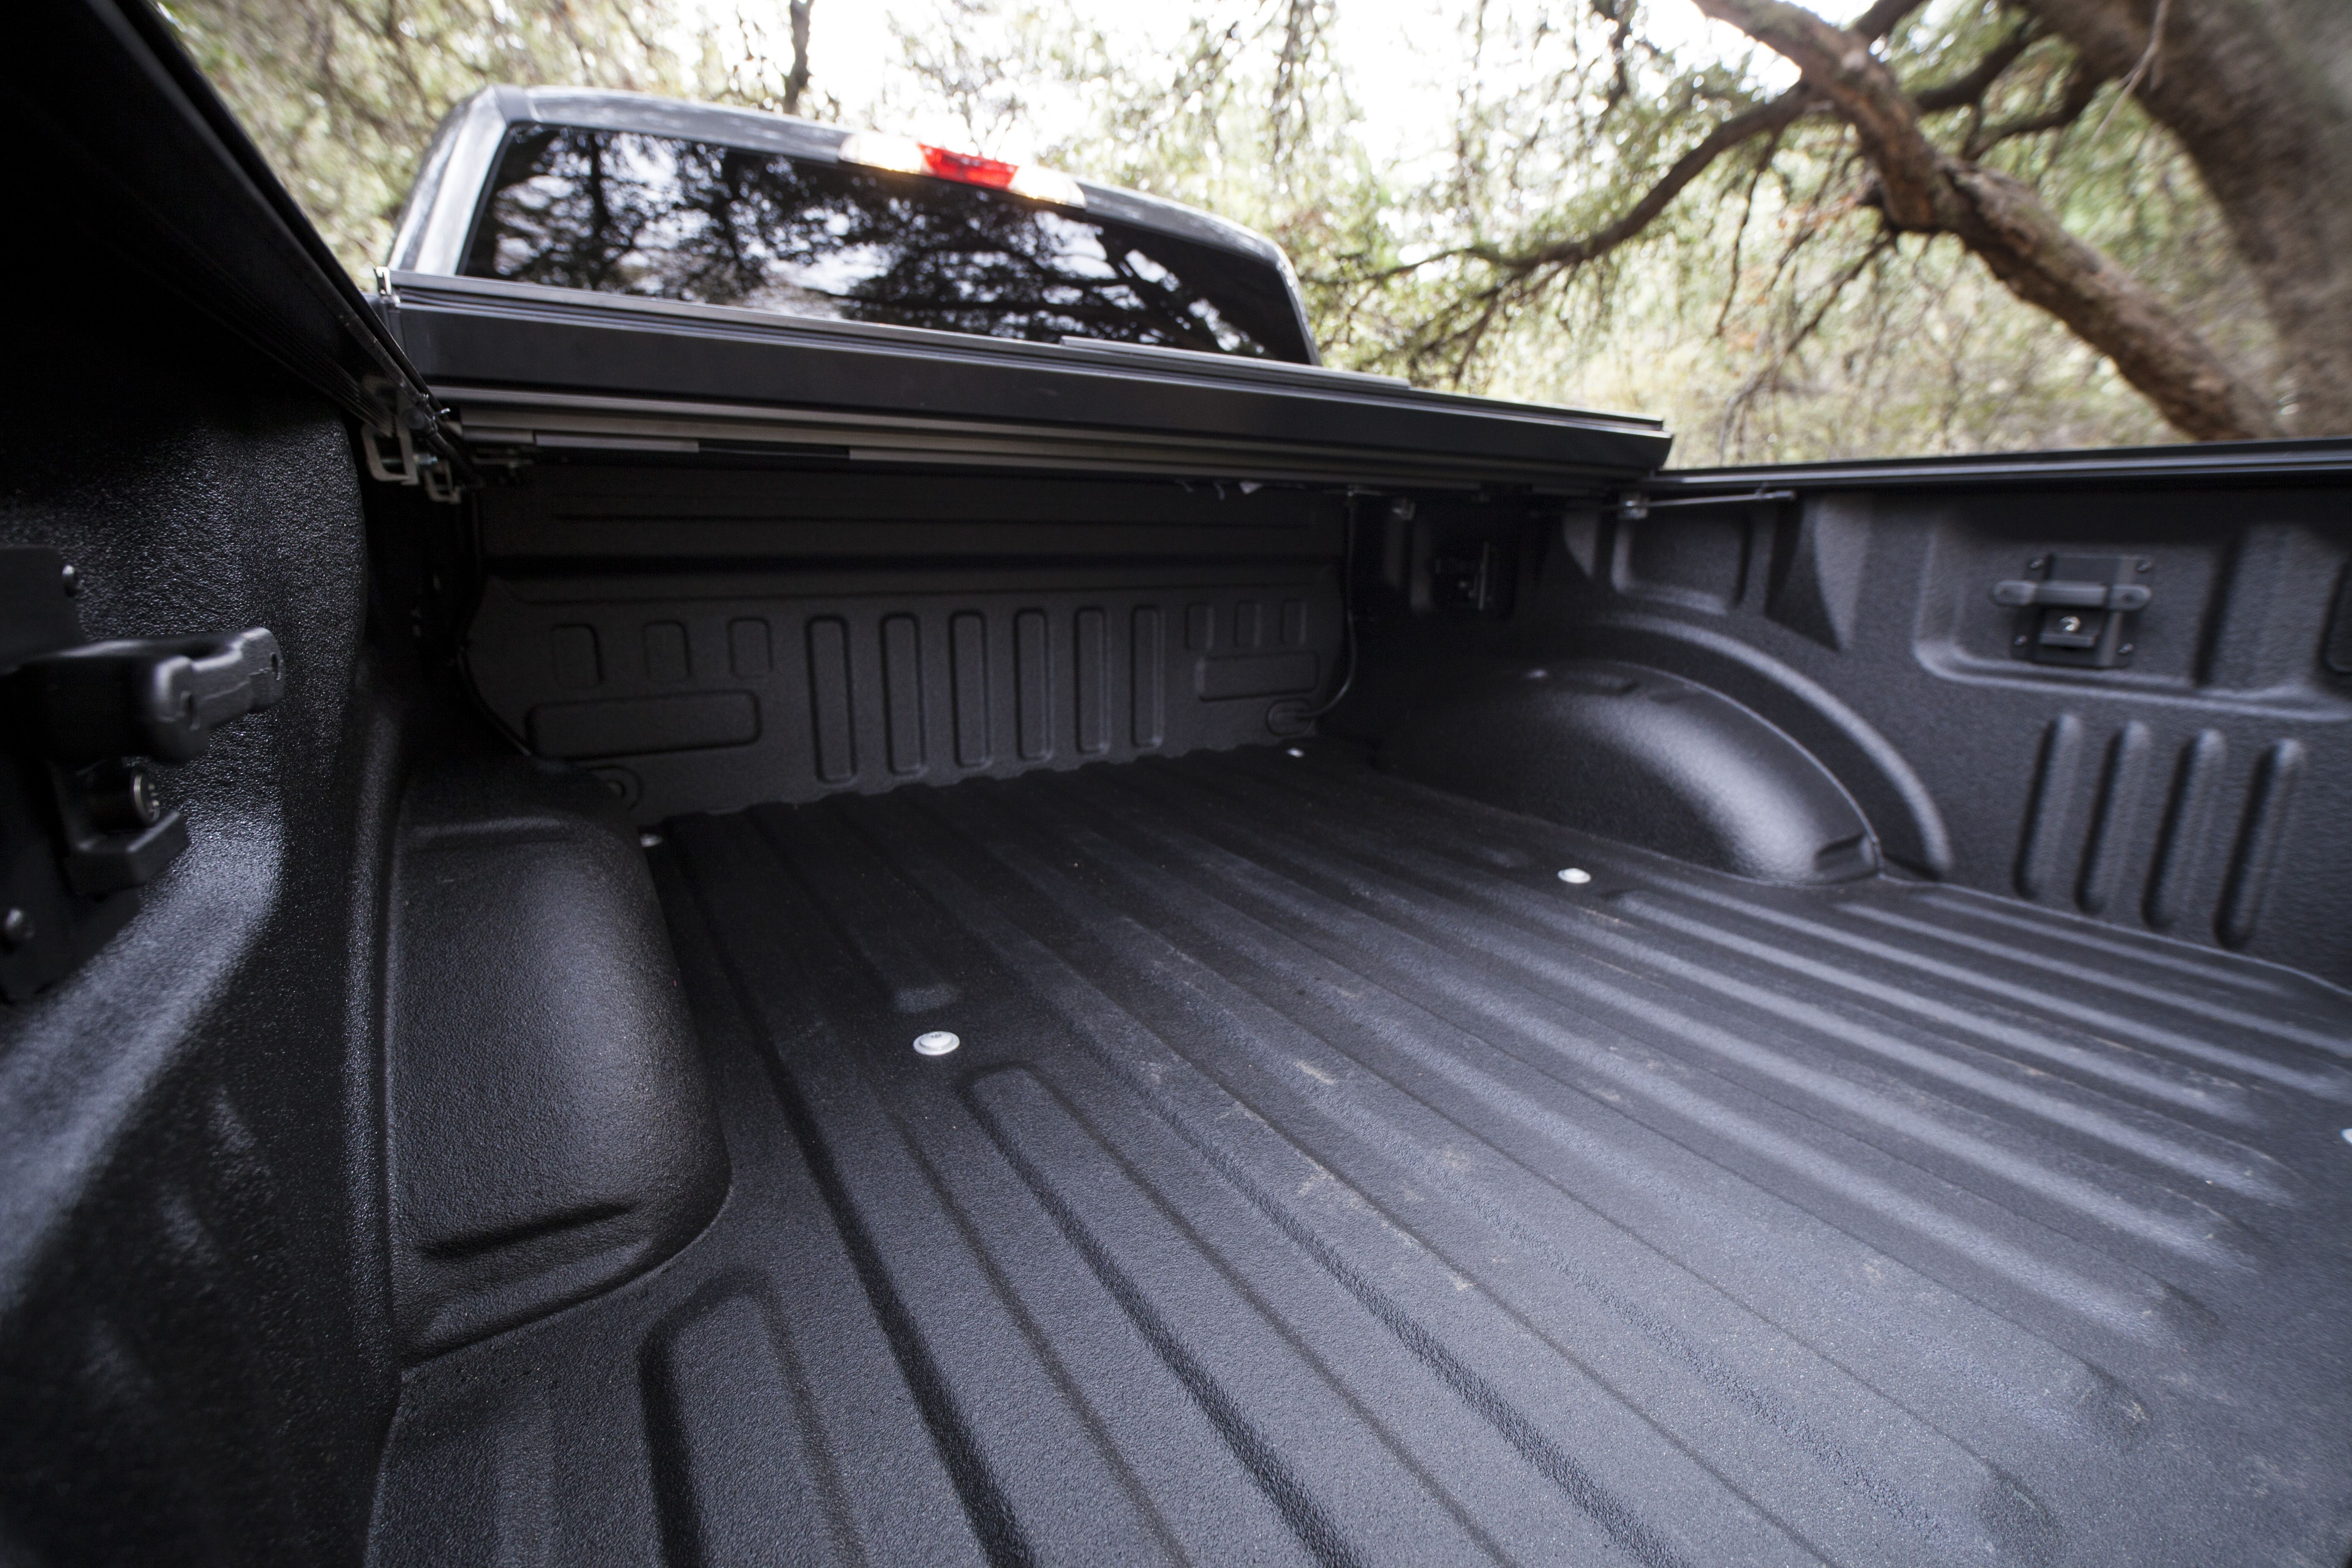 Spray In Bedliner Cost F150 >> How Much Does A Line X Bedliner Cost Line X